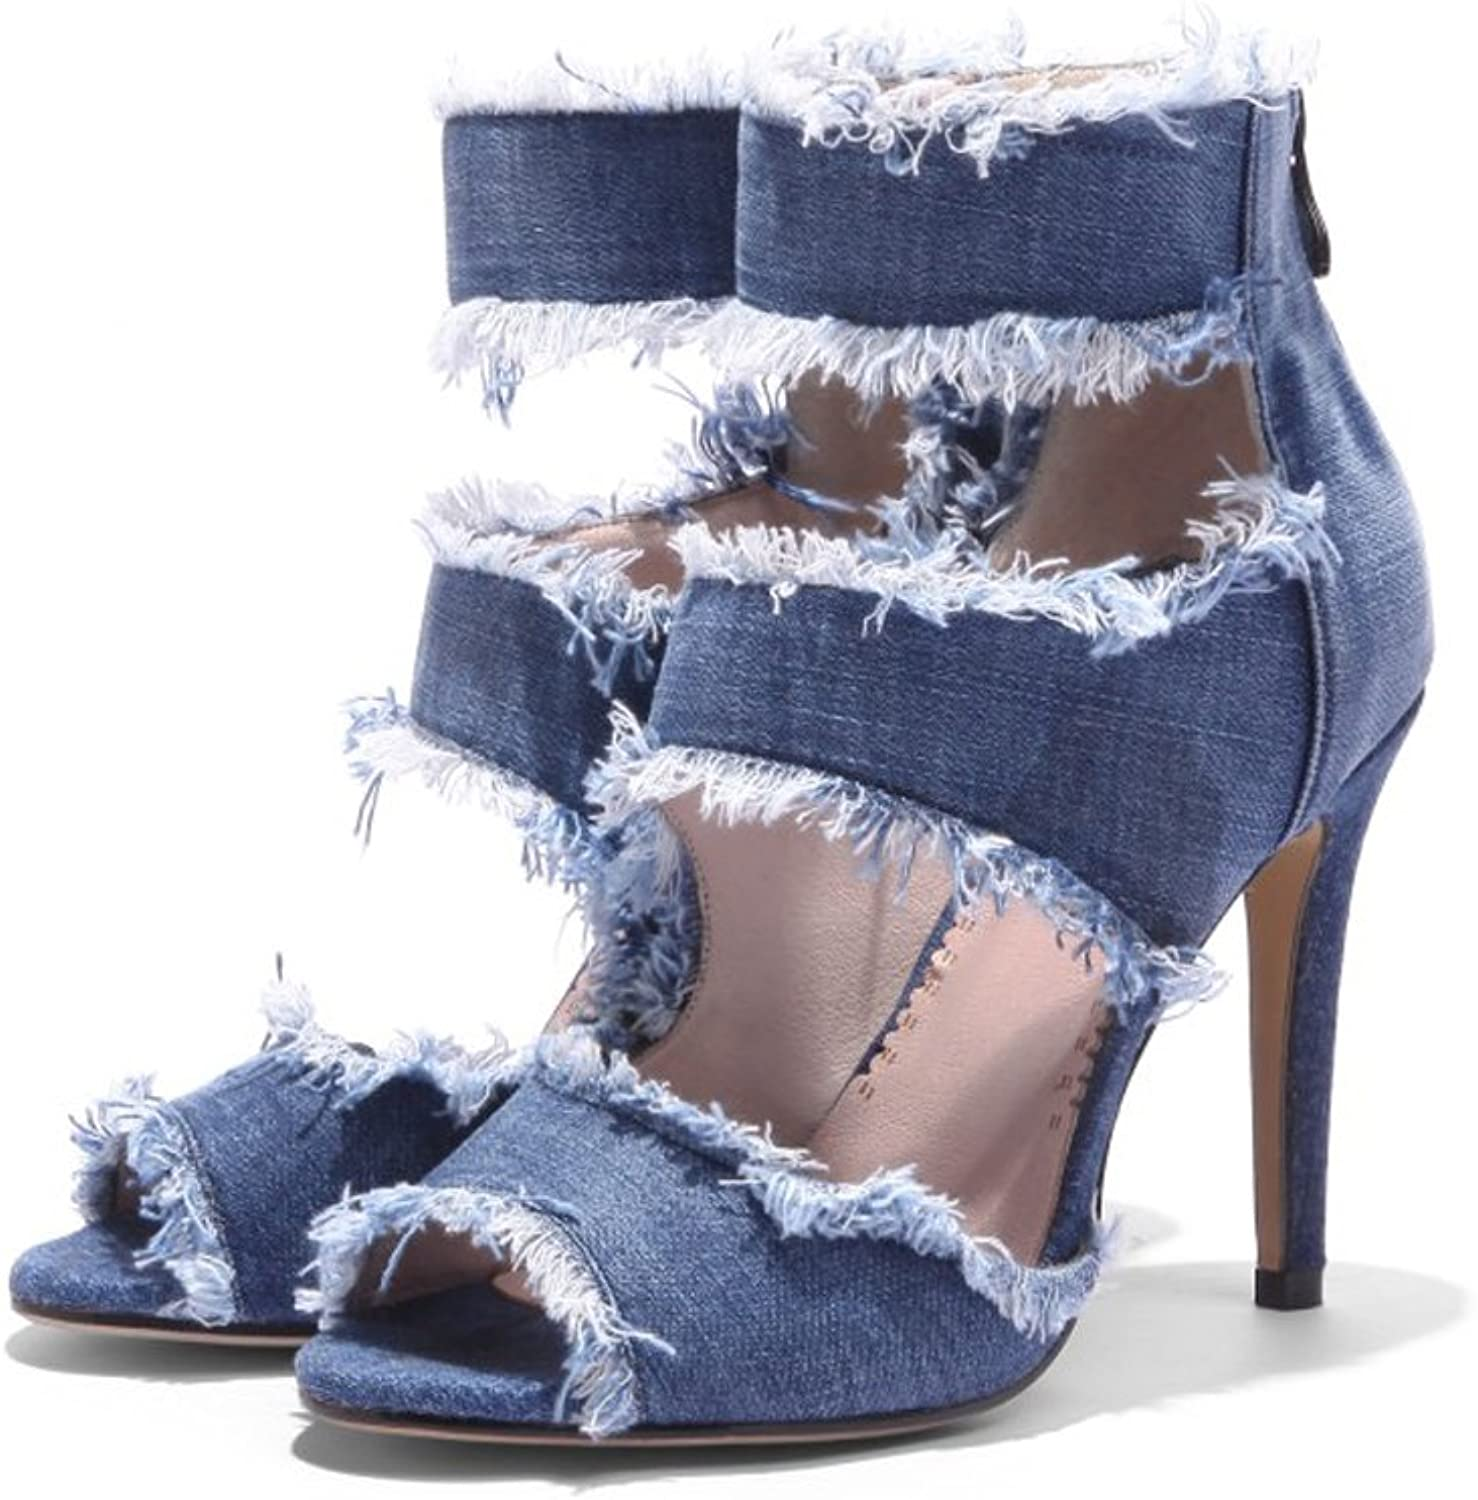 Themost Womens Back Zip Hollow Out Peep Toe bluee Denim High Heel Sandal shoes